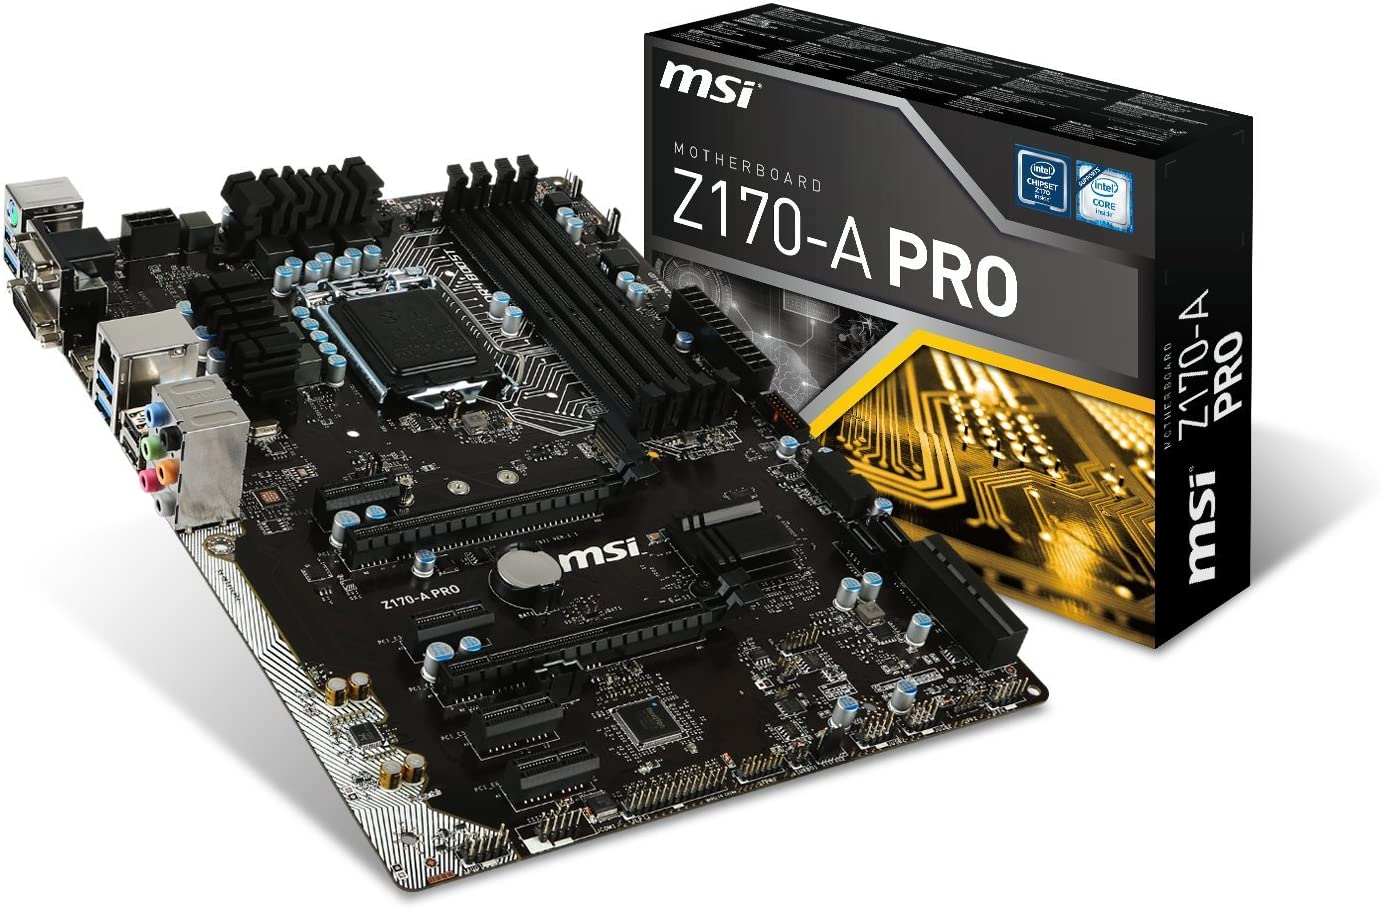 MSI Pro Solution Intel Z170ALGA 1151 DDR4 USB 3.1 ATX Motherboard (Z170-A Pro)